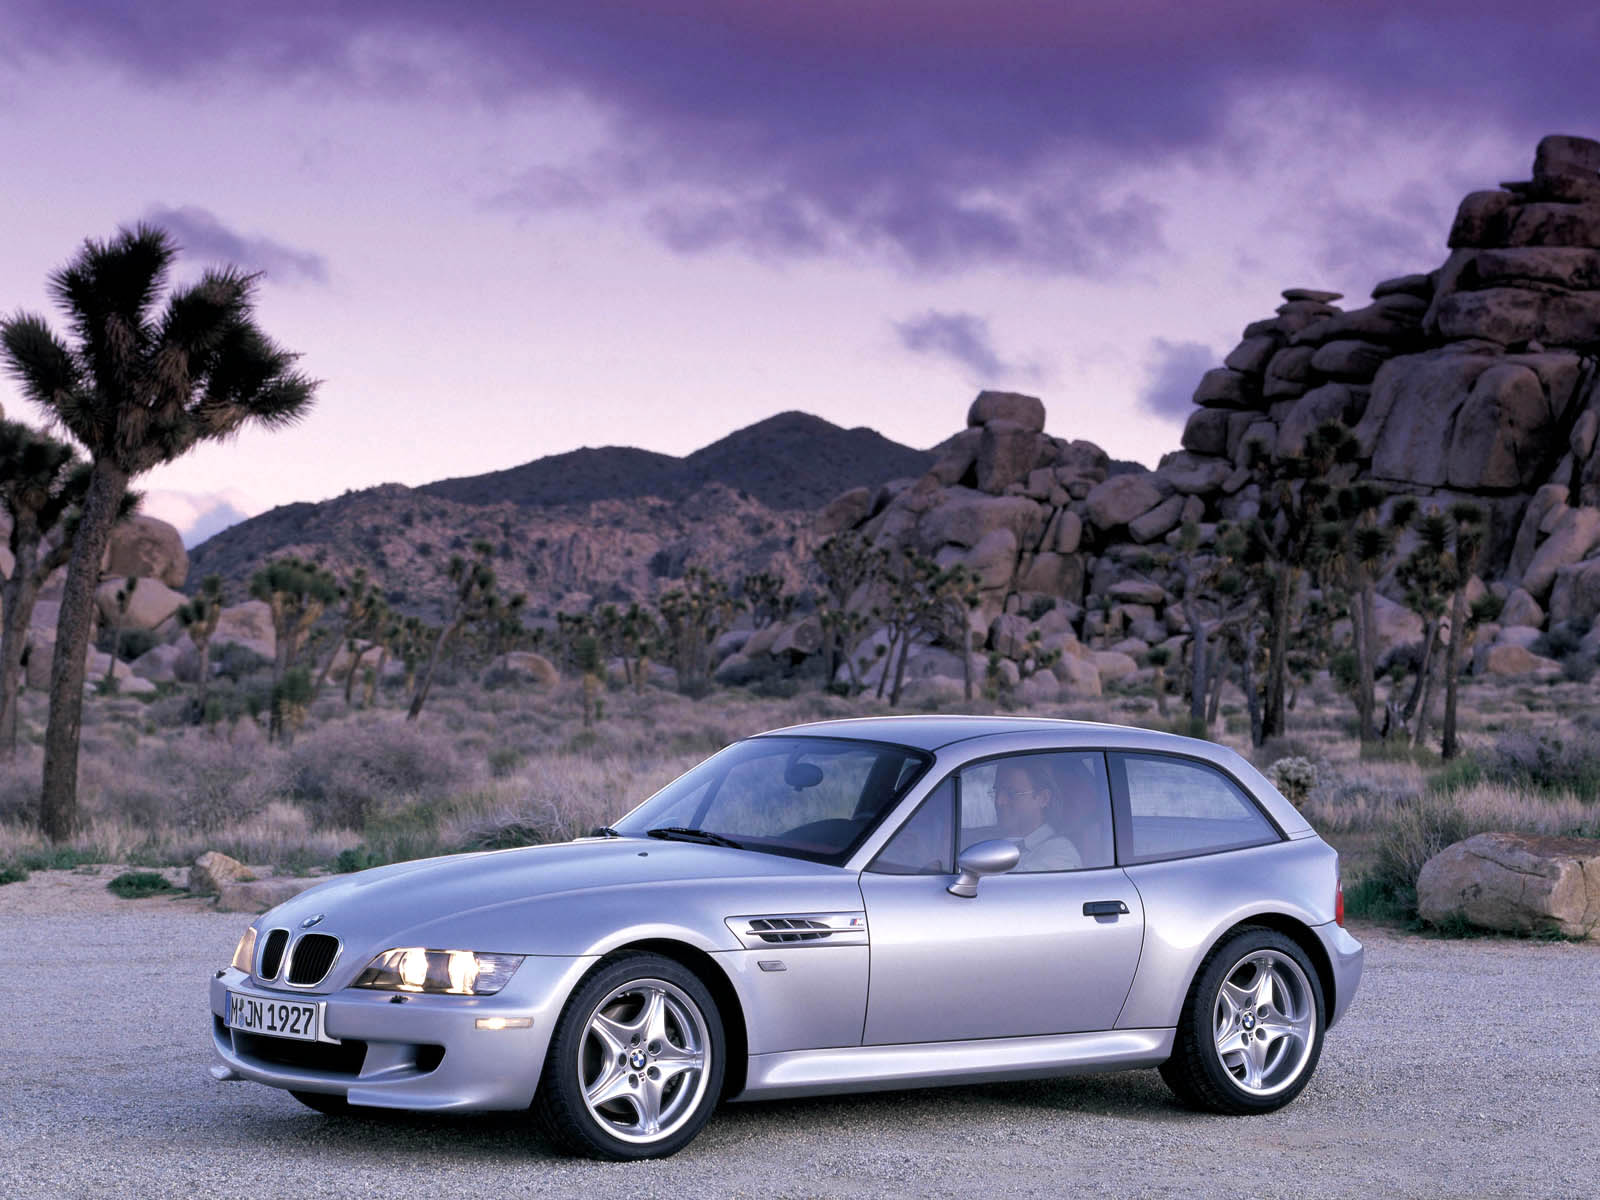 Bmw Z3 M Coupe Photos Photogallery With 23 Pics Carsbase Com